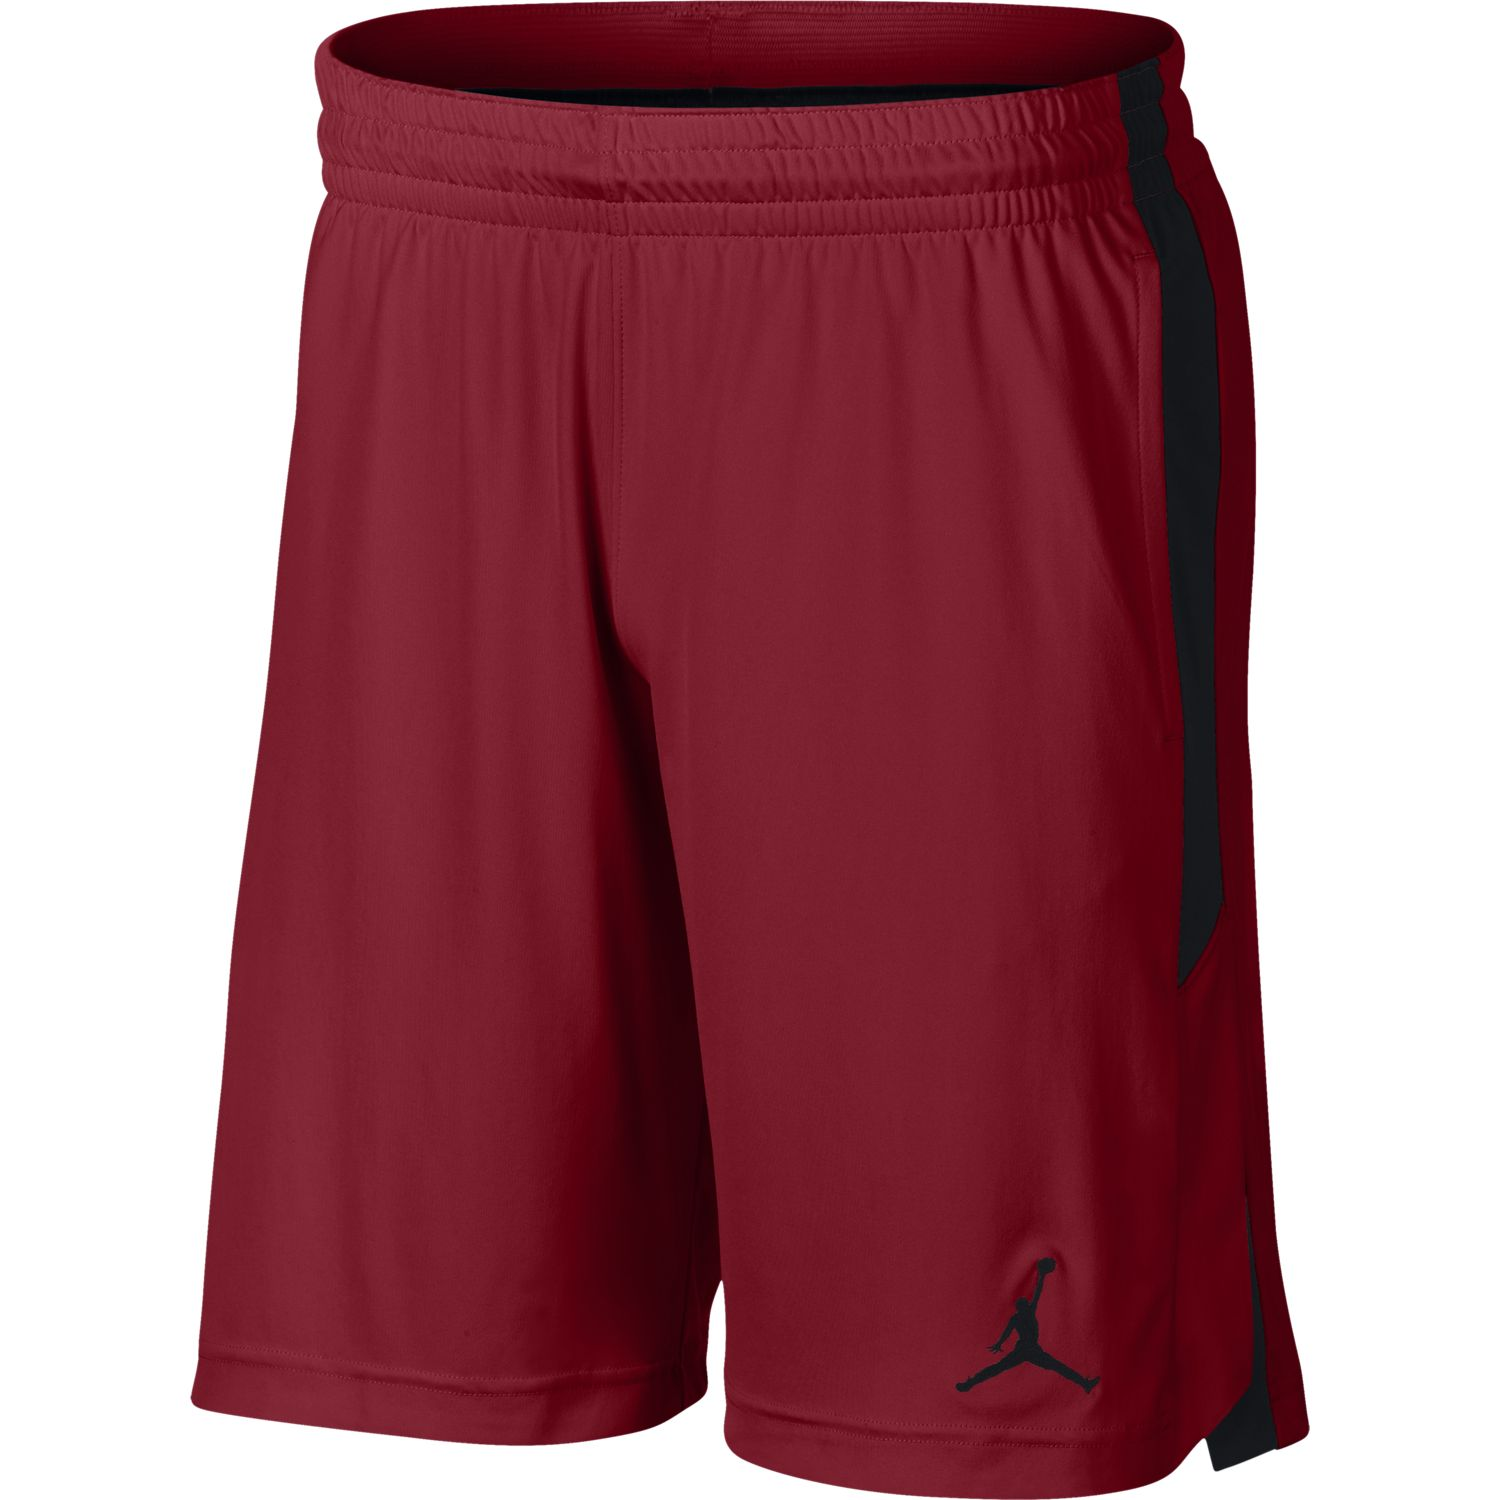 44f5a7ca04f26d Details about JORDAN 23 ALPHA DRY KNIT SHORTS - MEN S Basketball